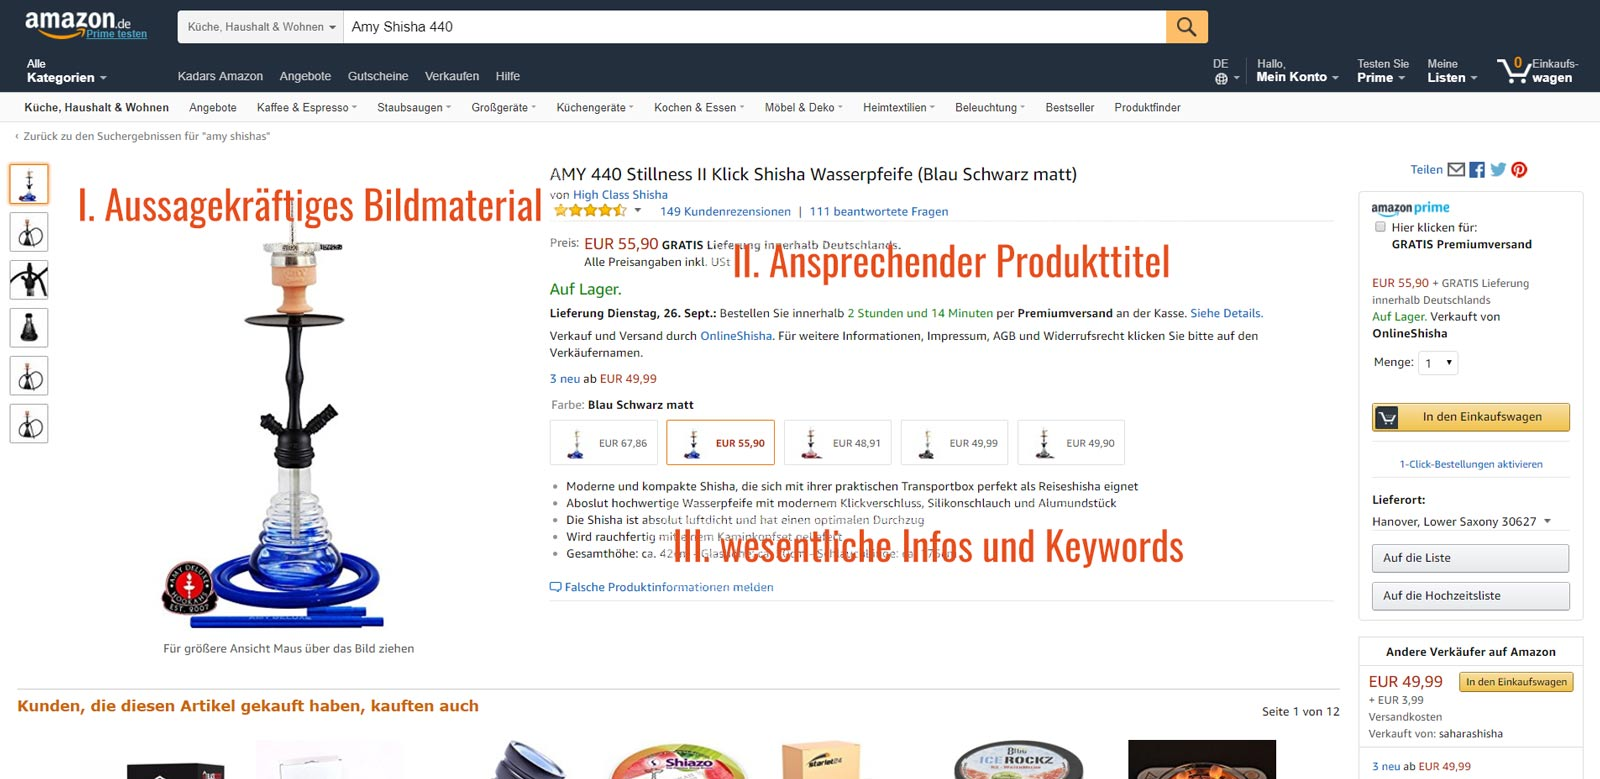 Amazon Optimierung / Amazon SEO